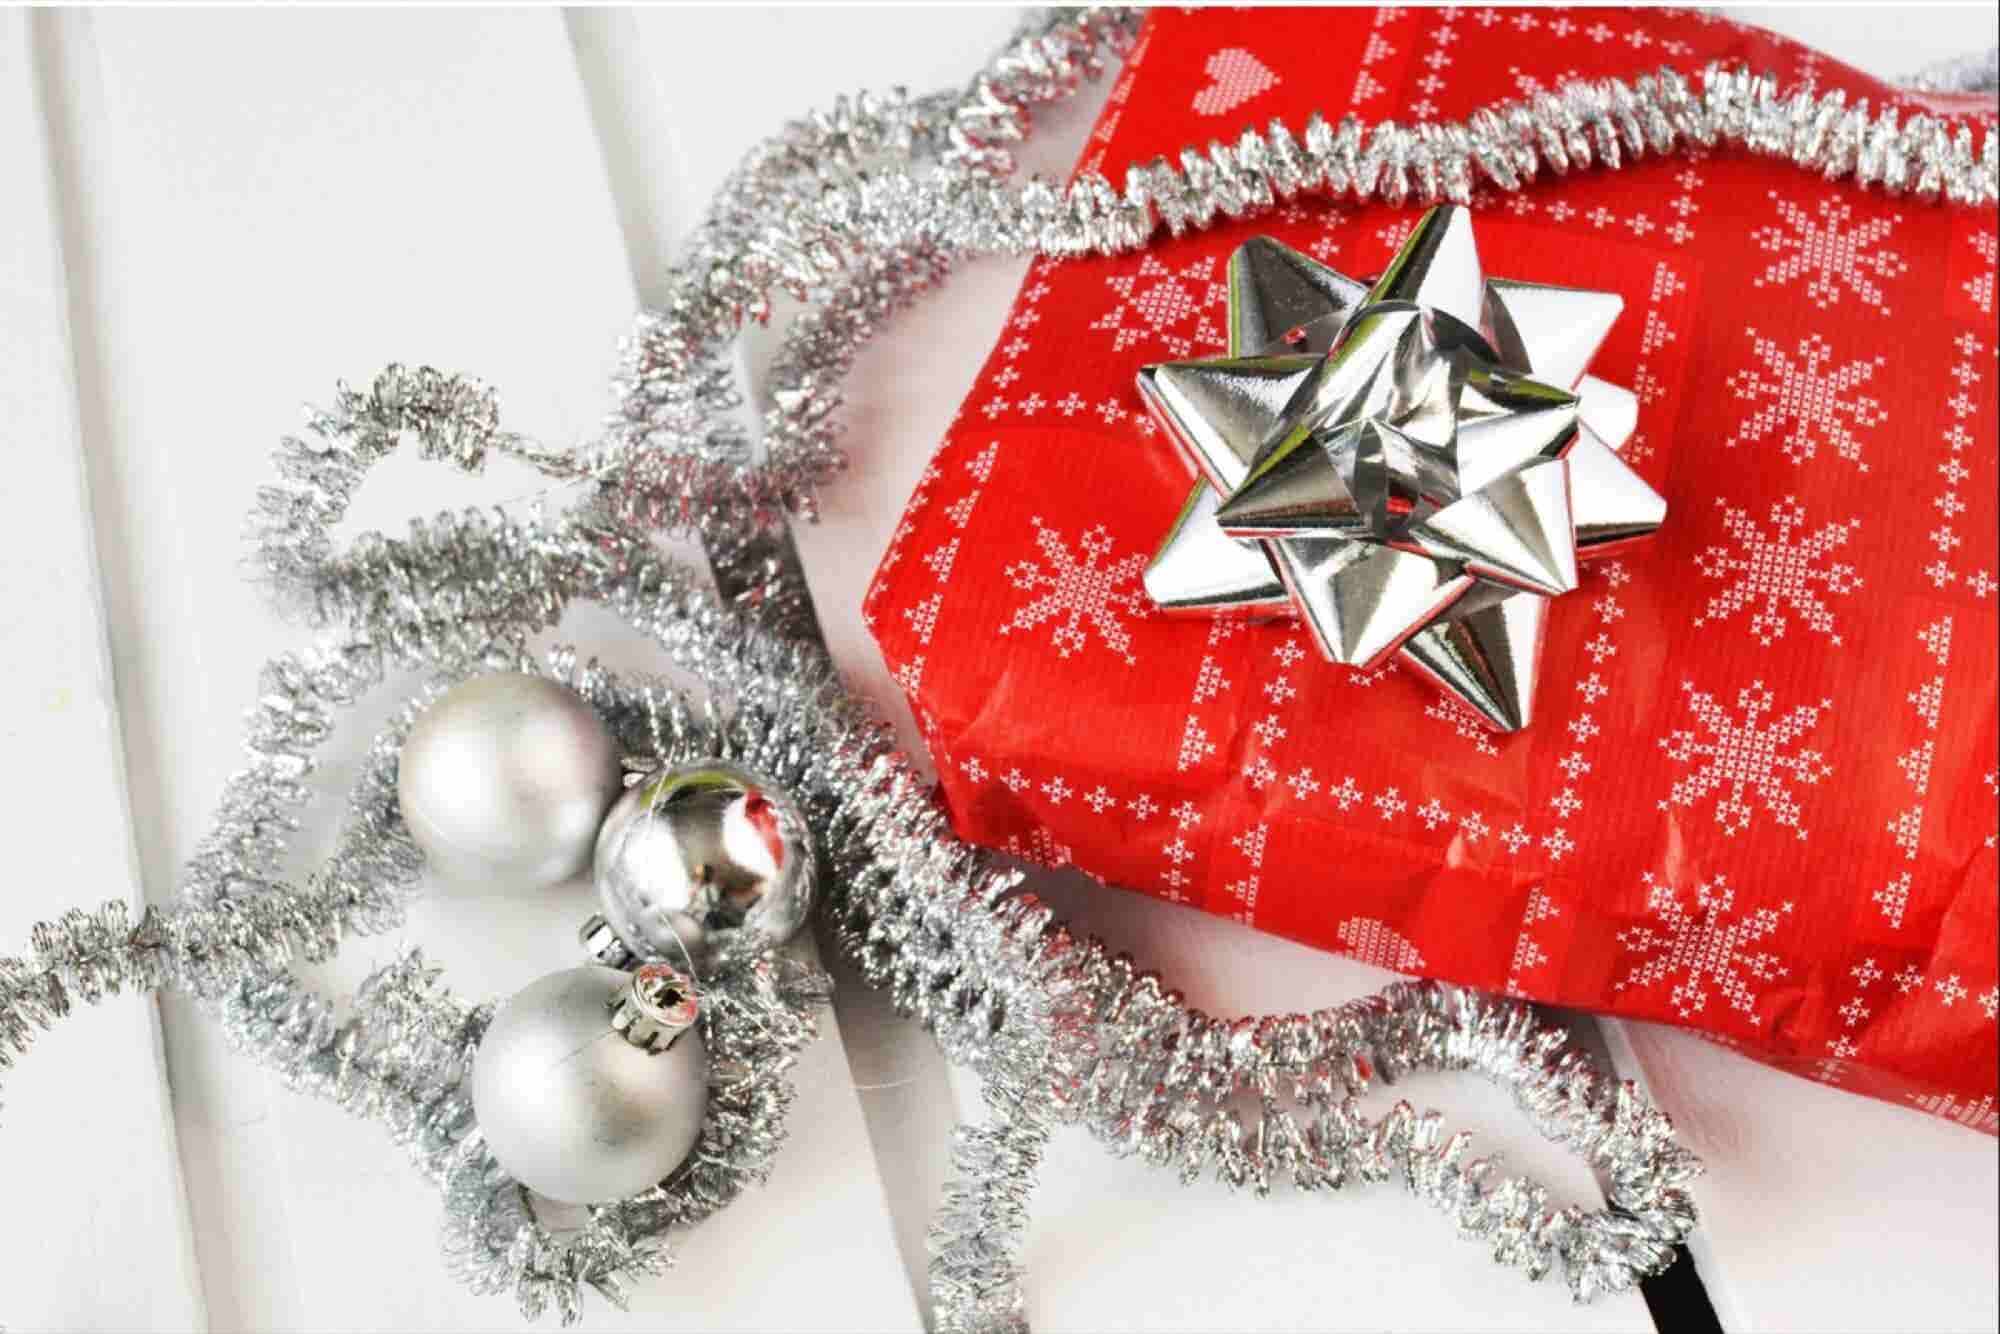 The Etiquette of Exchanging Holiday Gifts in the Office